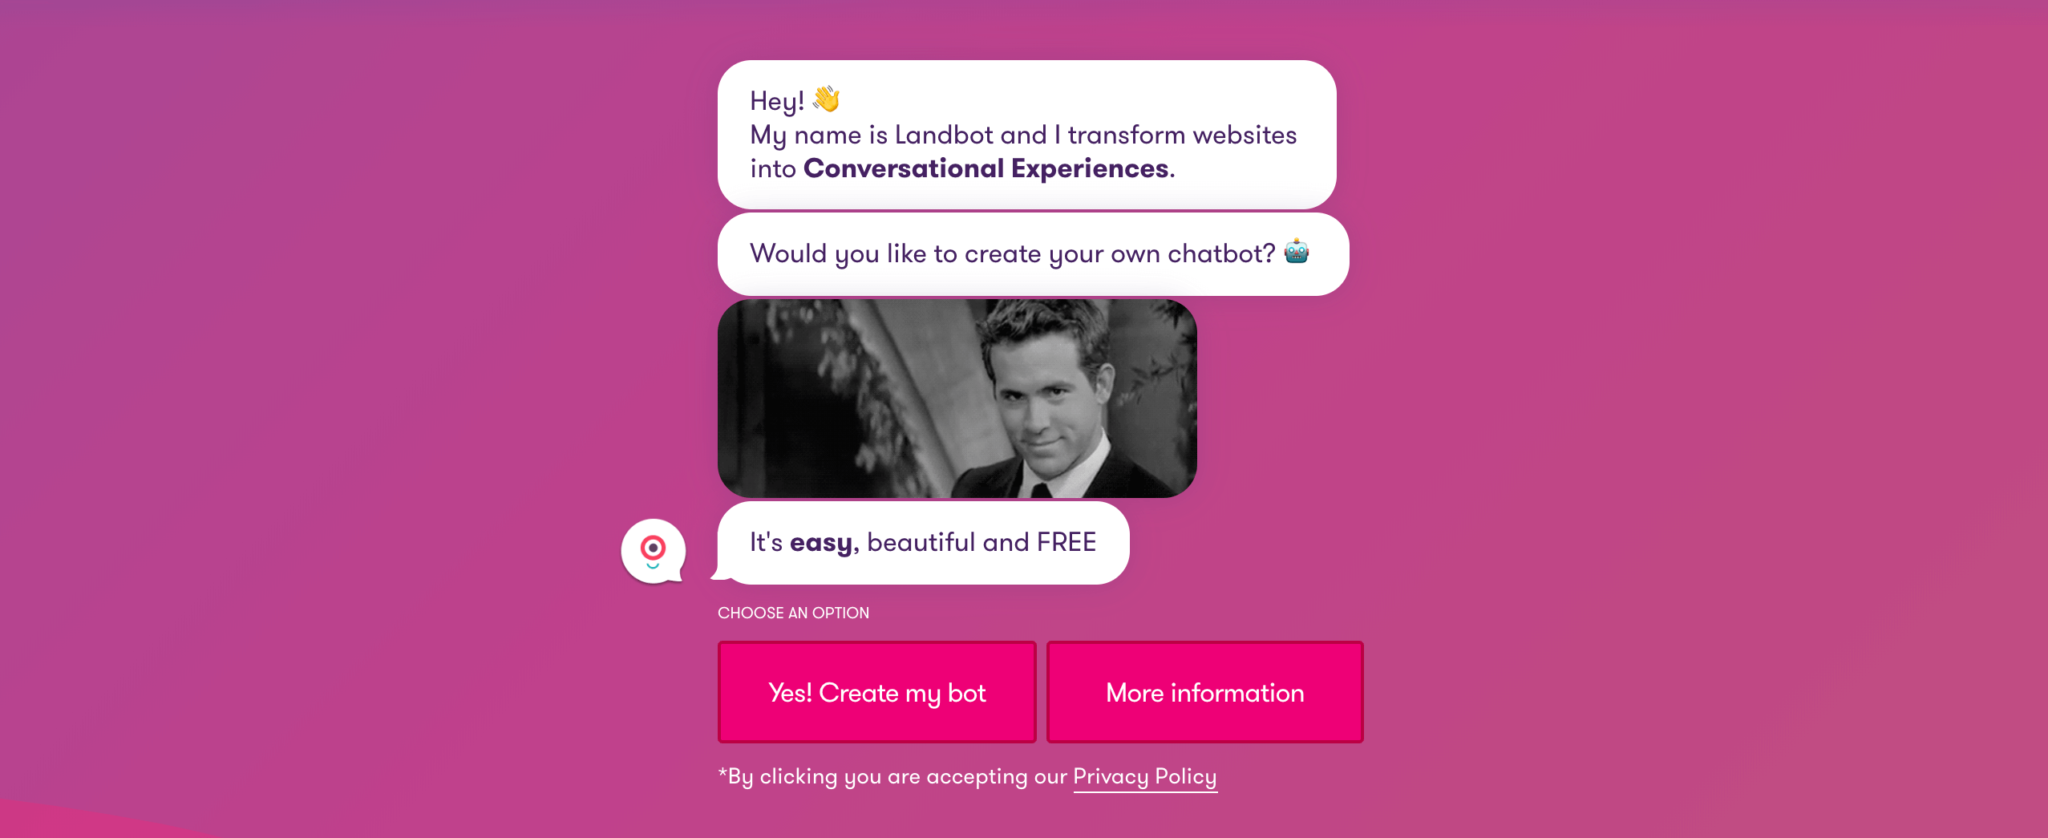 Why Chatbots Are Not a Dying Trend (And What That Means for You)